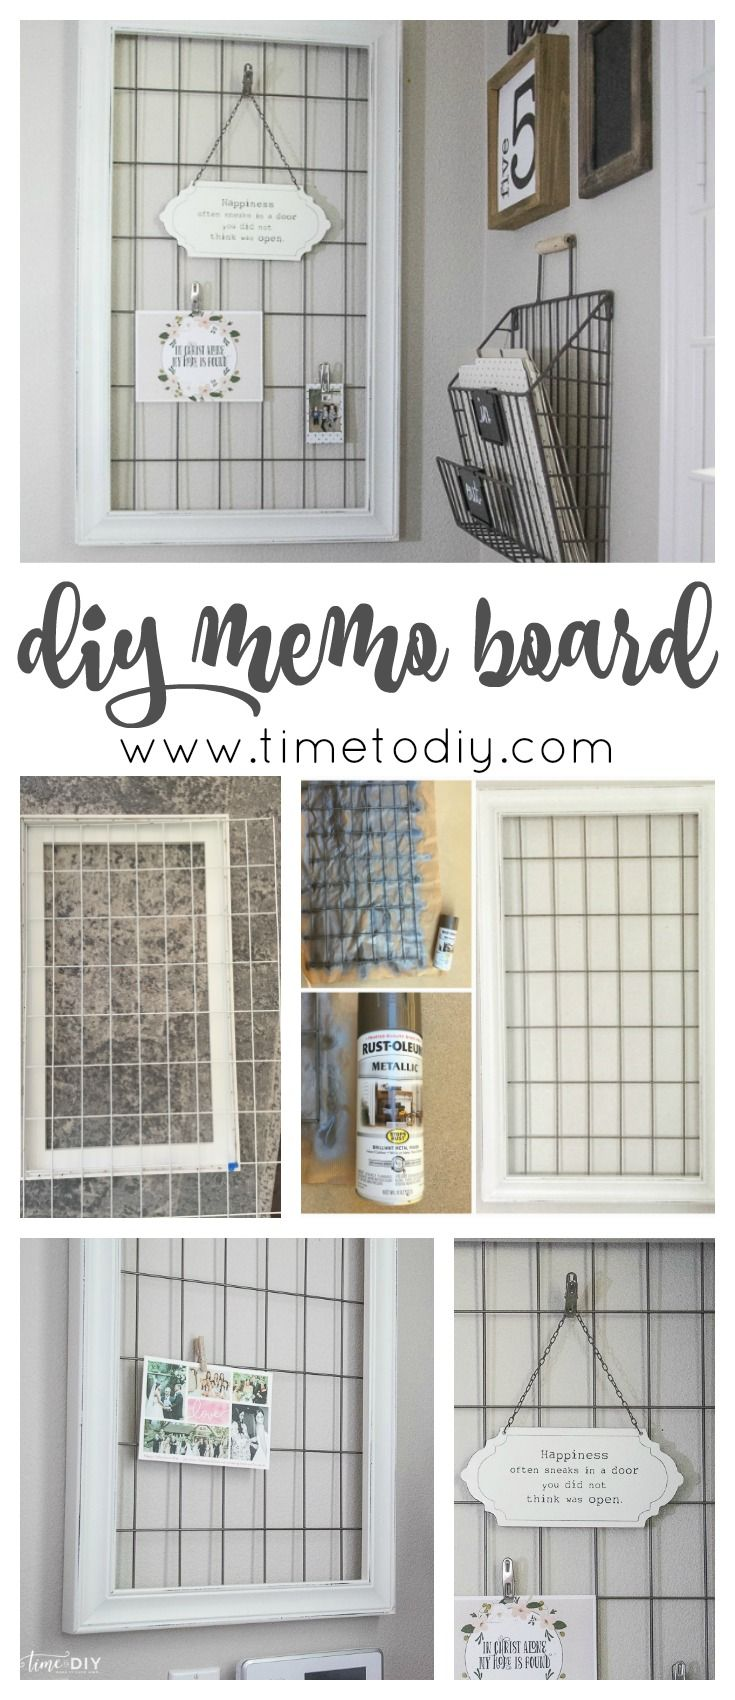 DIY memo board upcycled from a crib spring frame